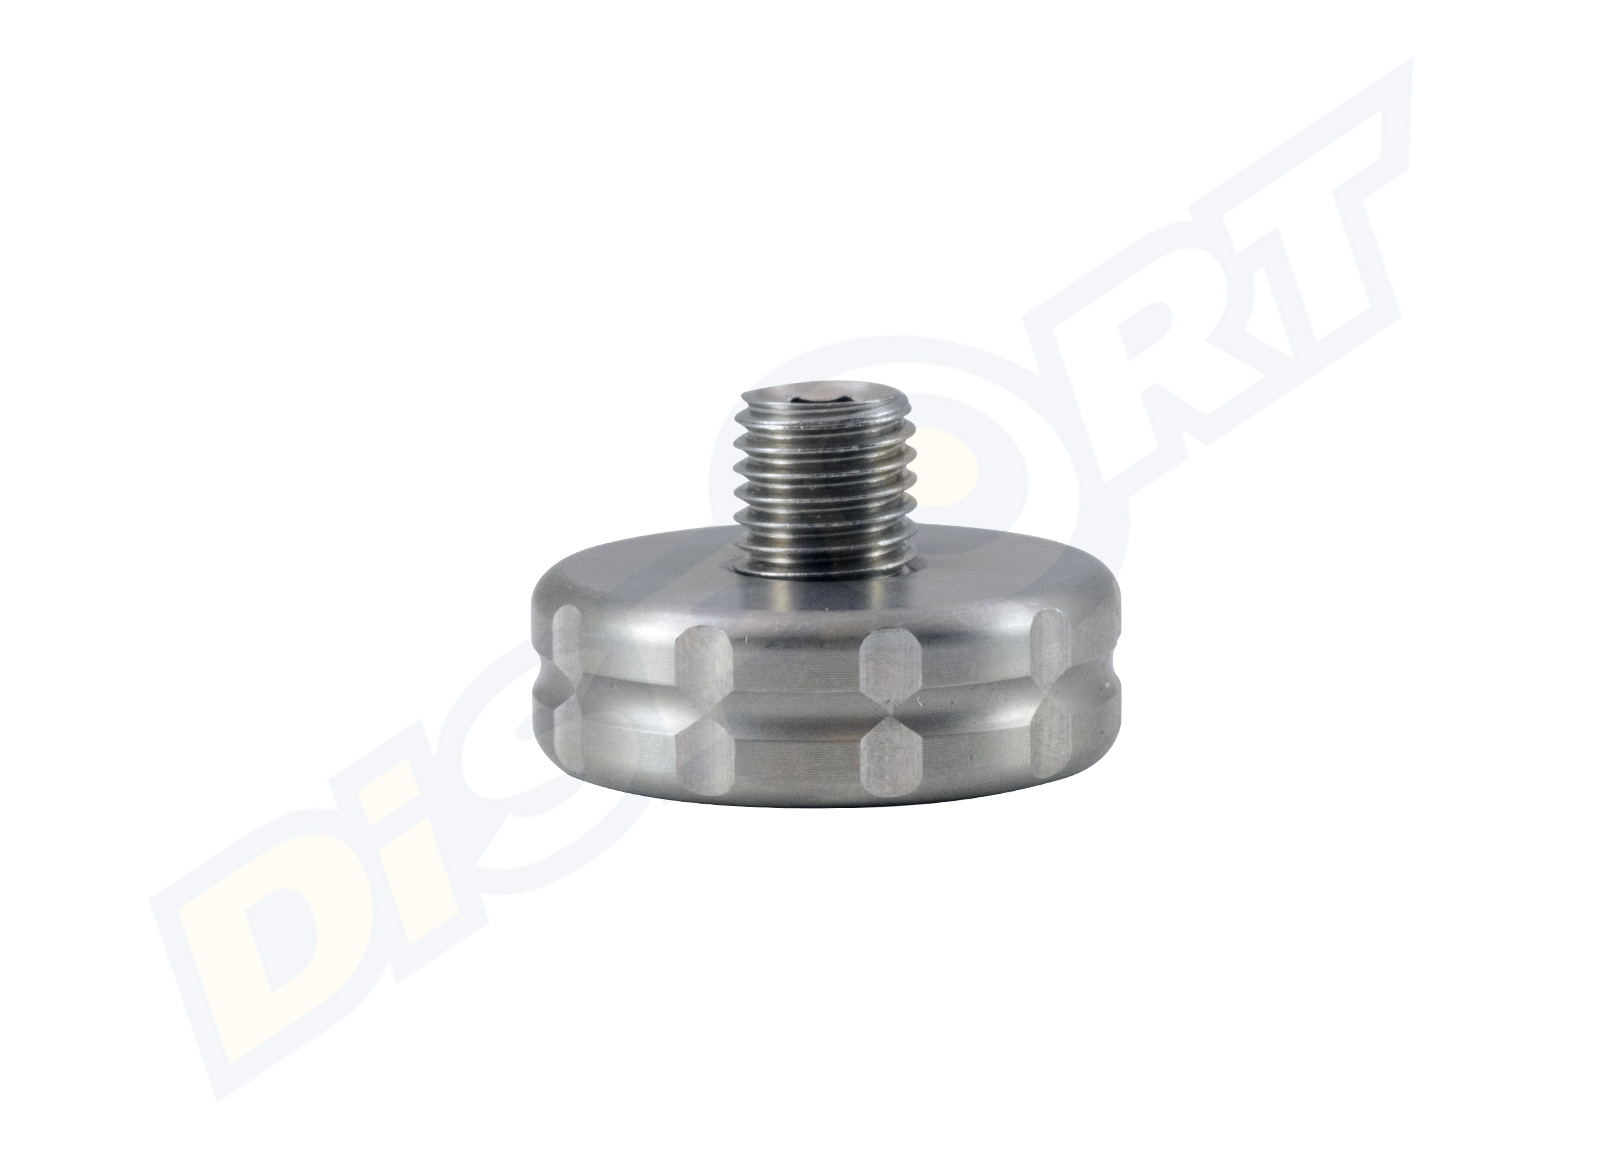 AXCEL PESI PER STABILIZZATORE 1OZ 1.00'' STAINLESS STEEL (3pcs)